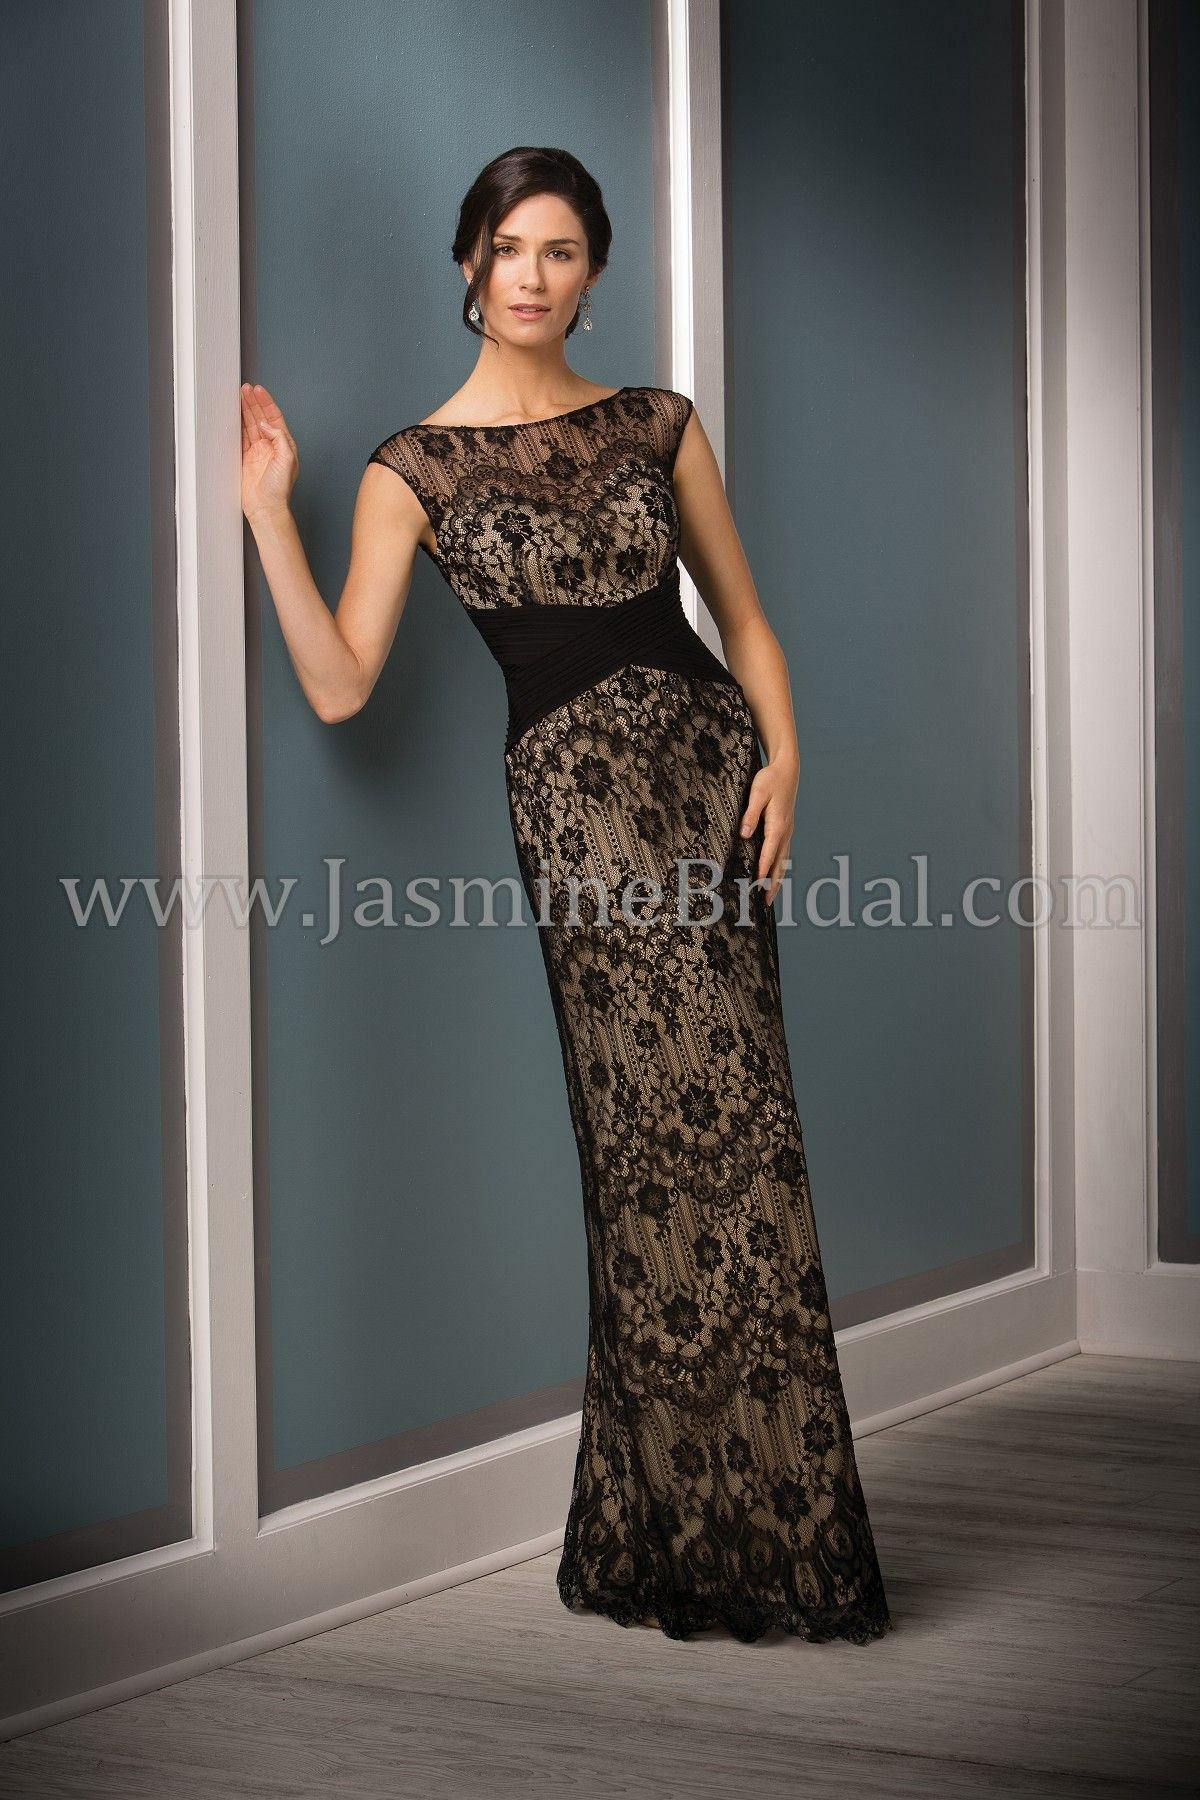 dbb8f8bd126 Jasmine Bridal - Jade Couture Style K188011 in Lace Matte Jersey ...